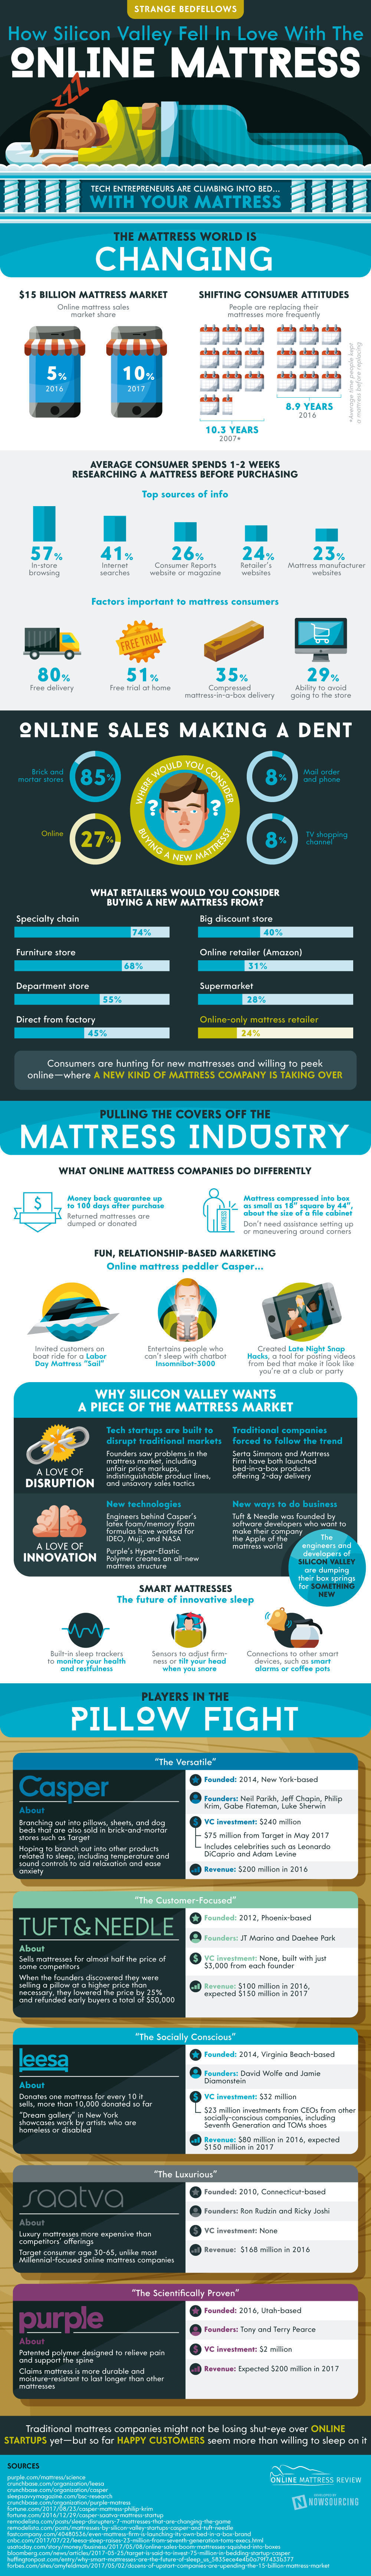 Why Silicon Valley Fell In Love With Online Mattresses #infographic